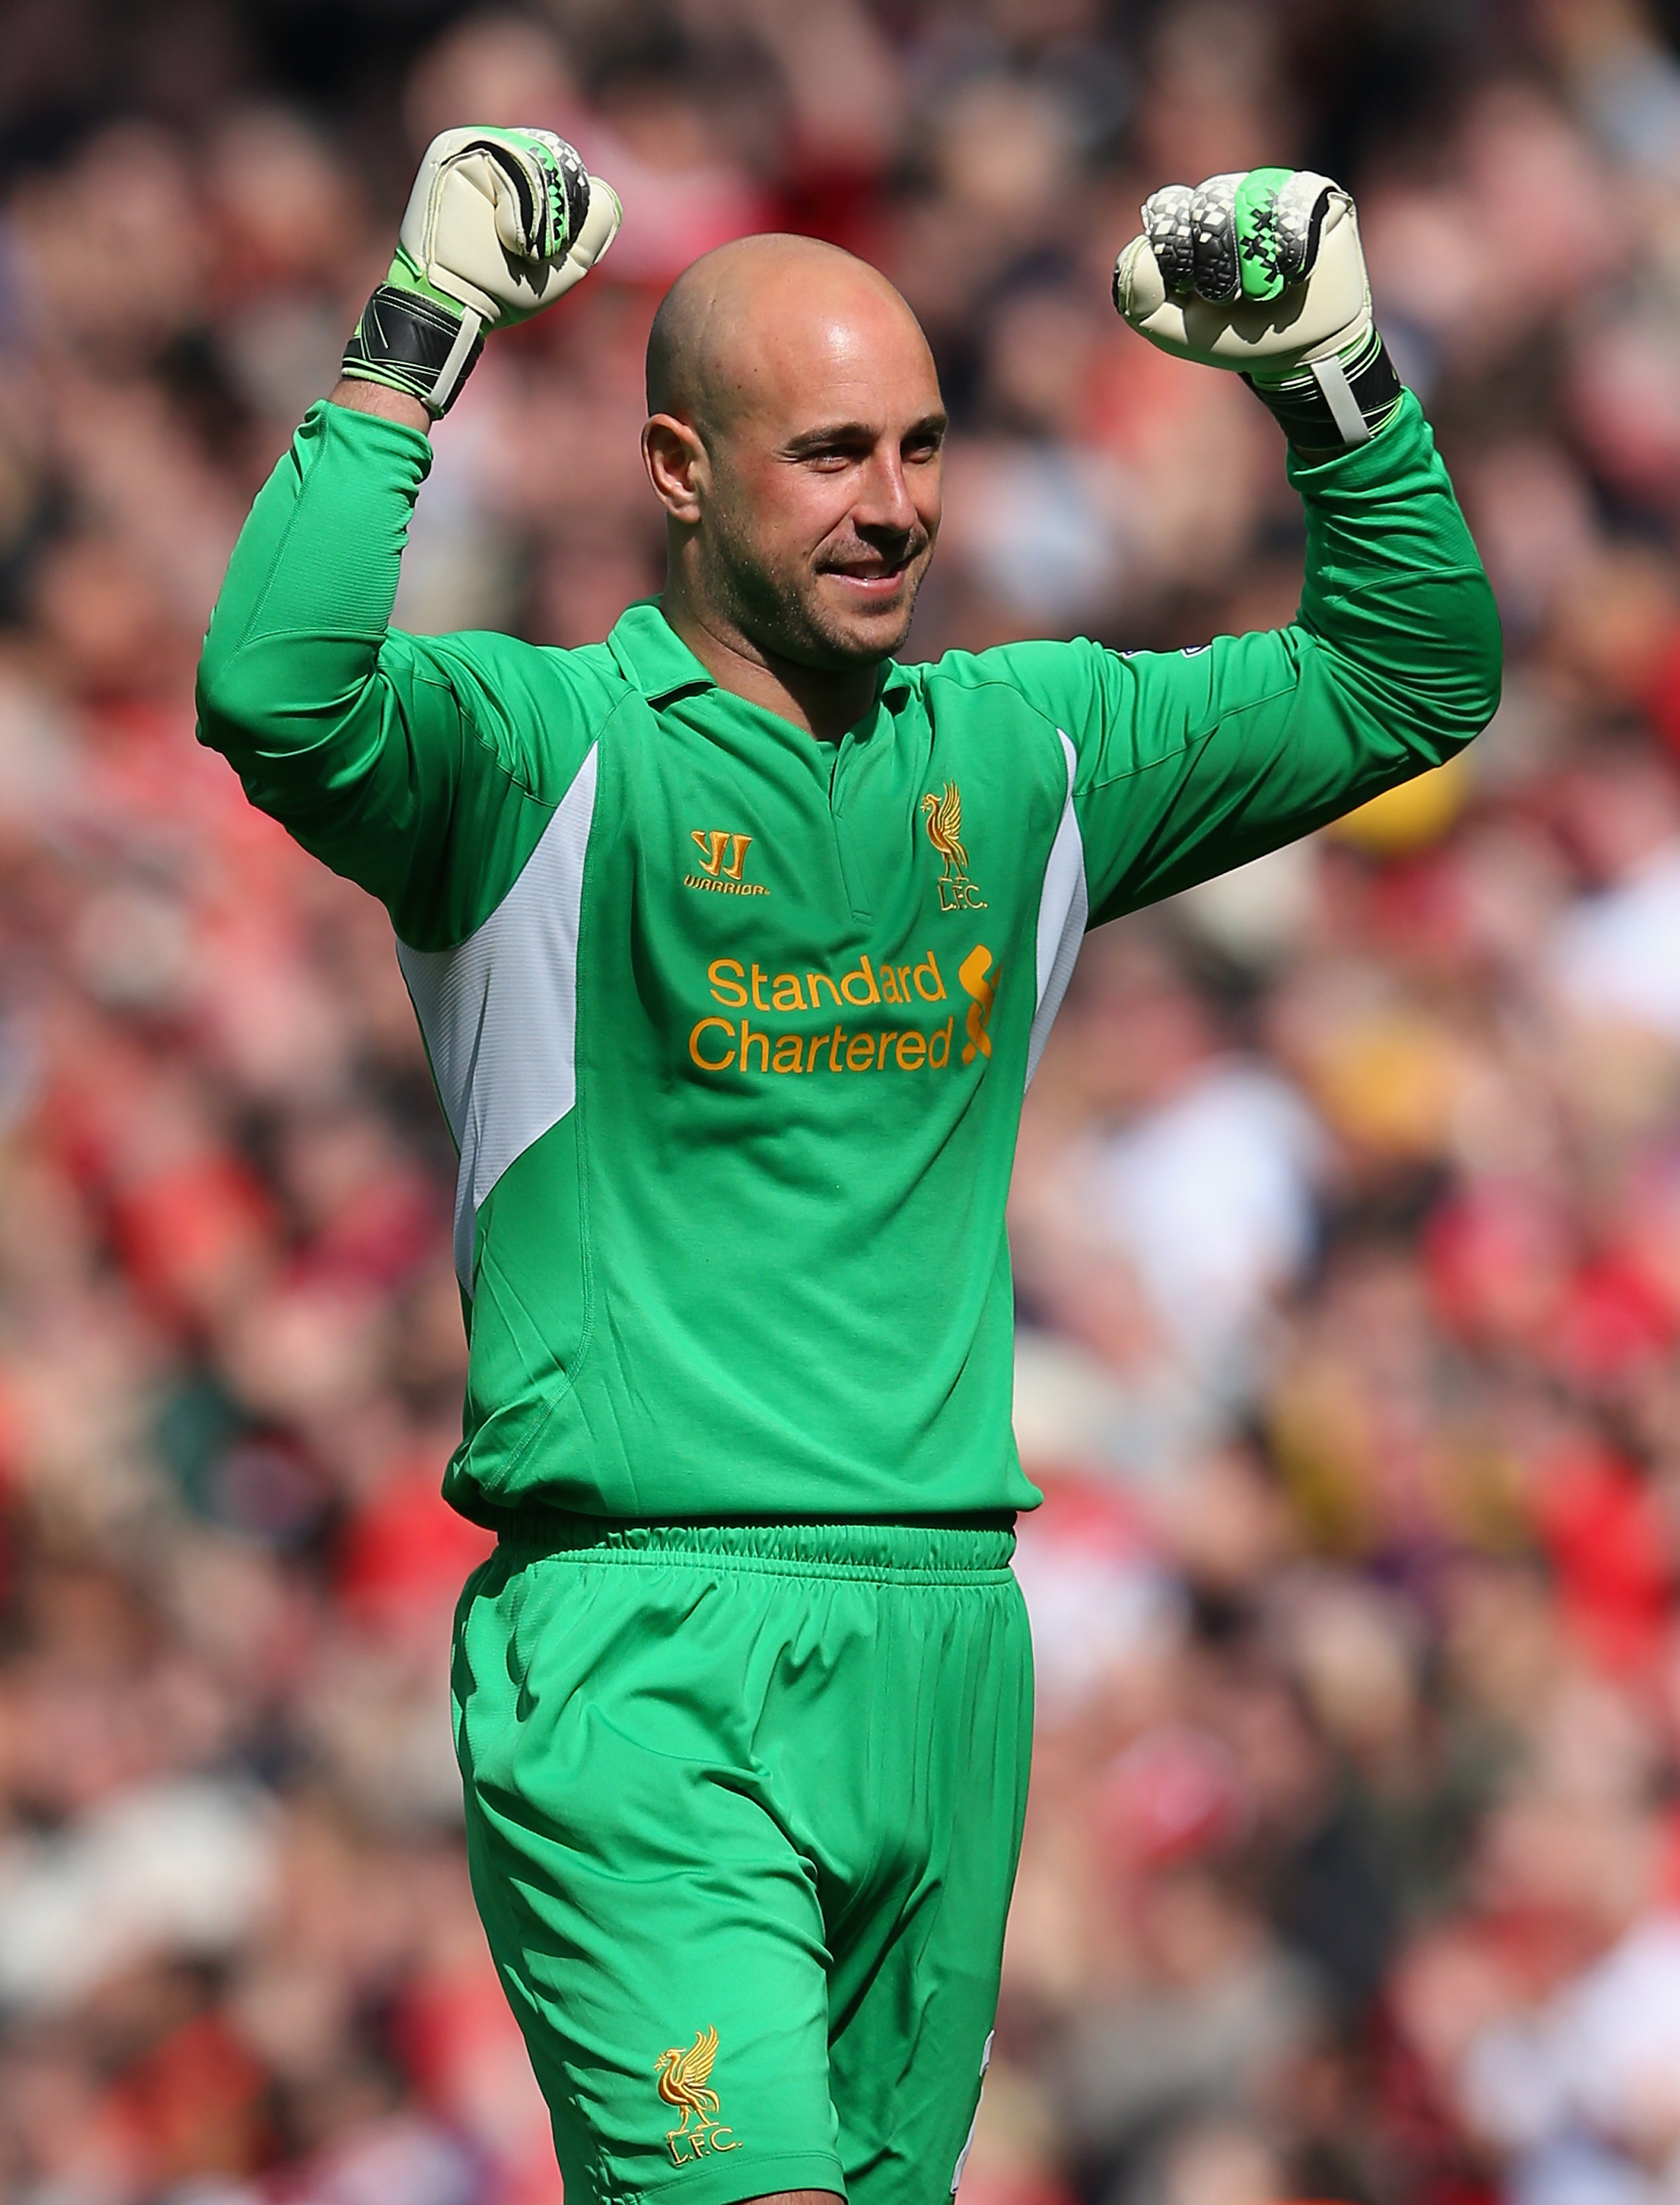 """Pepe Reina On Liverpool's Success and Being Their """"Number One Fan"""""""